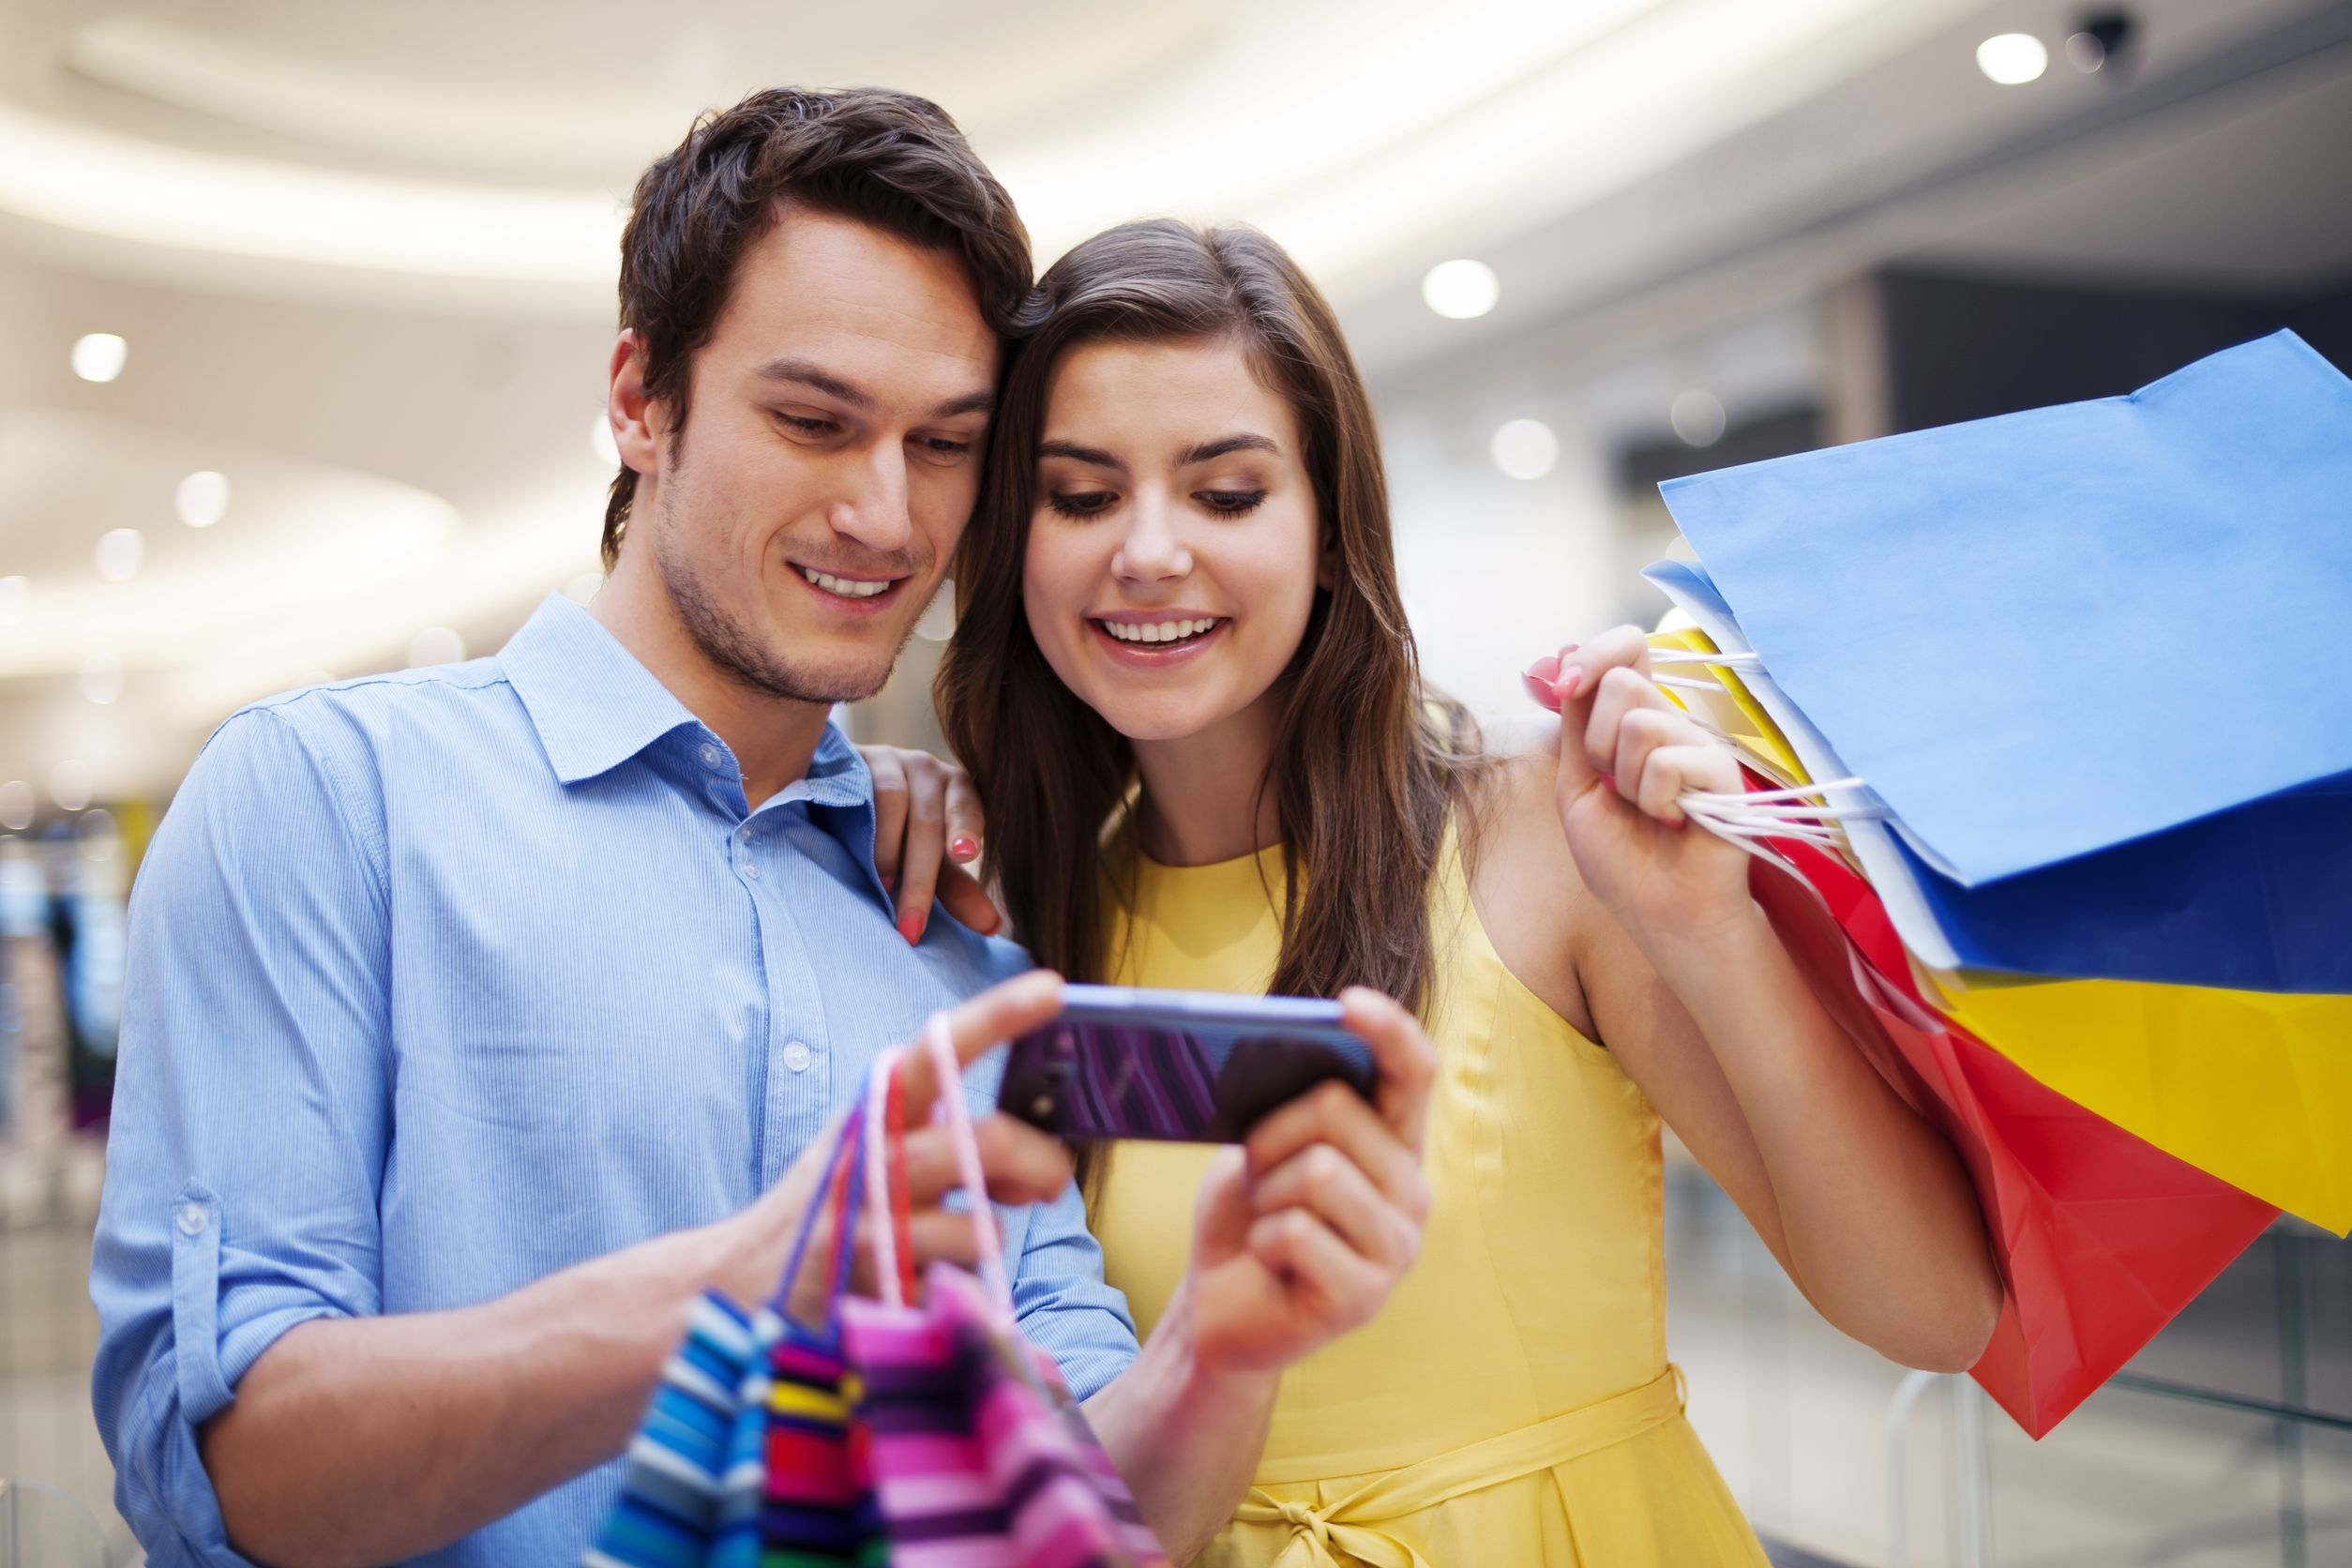 SMS Attracts More Customers To Retail Stores